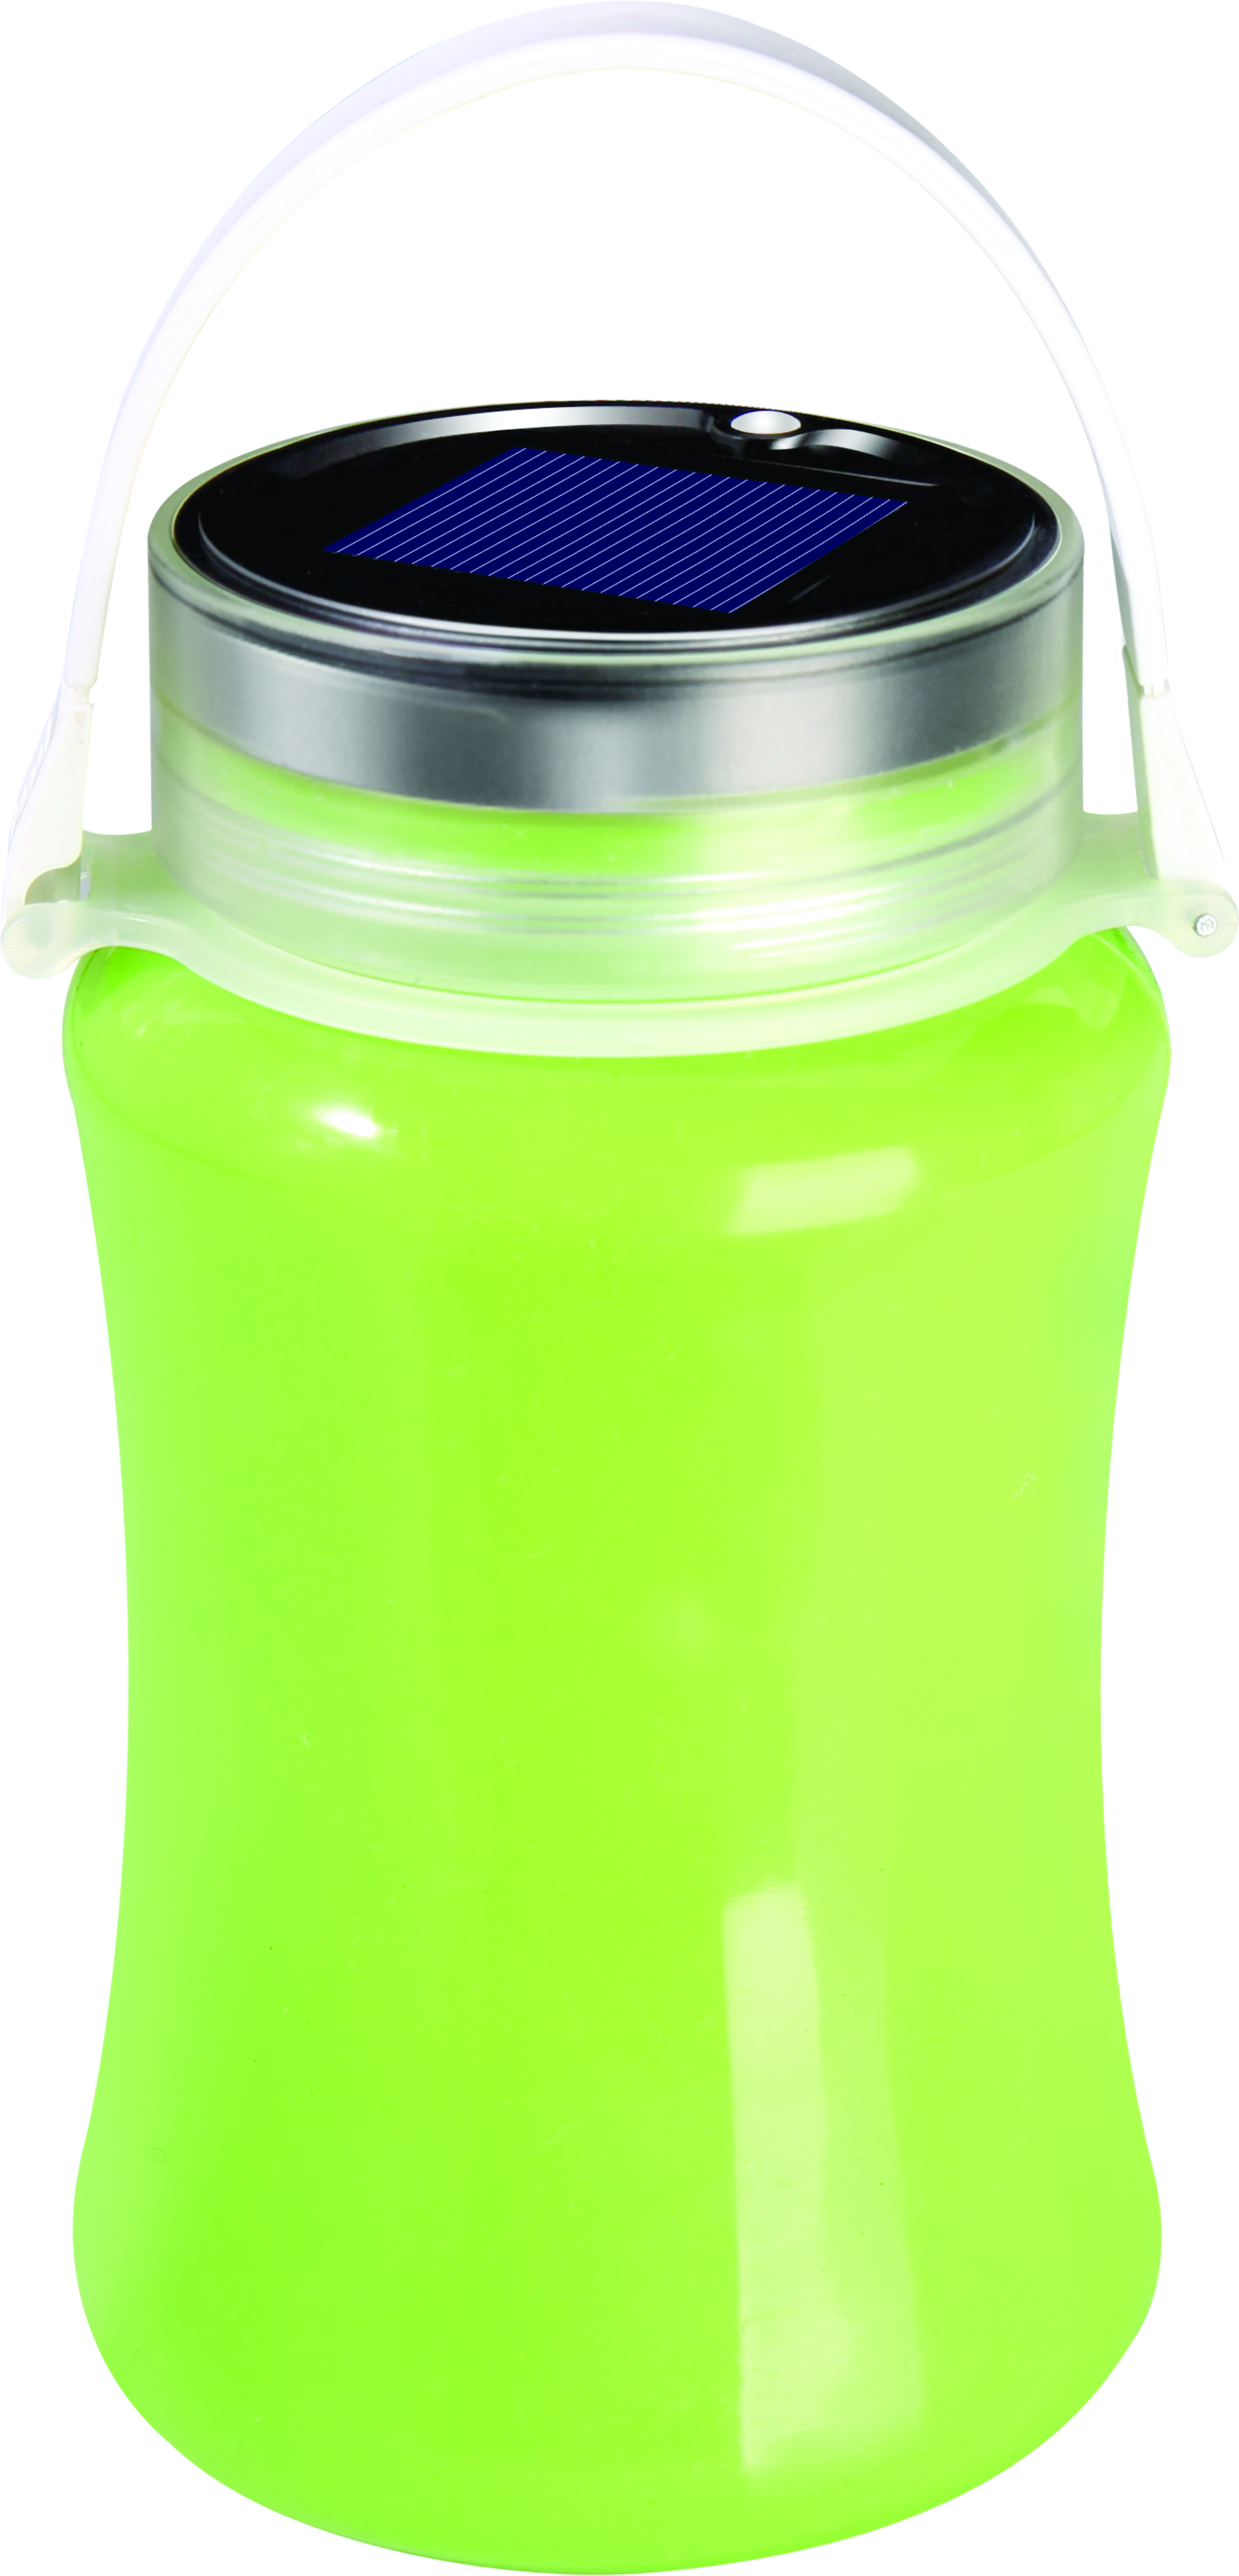 The ultratech silicone, Solar rechargeable lantern. Great for Camping, hiking, emergency light and gifts.